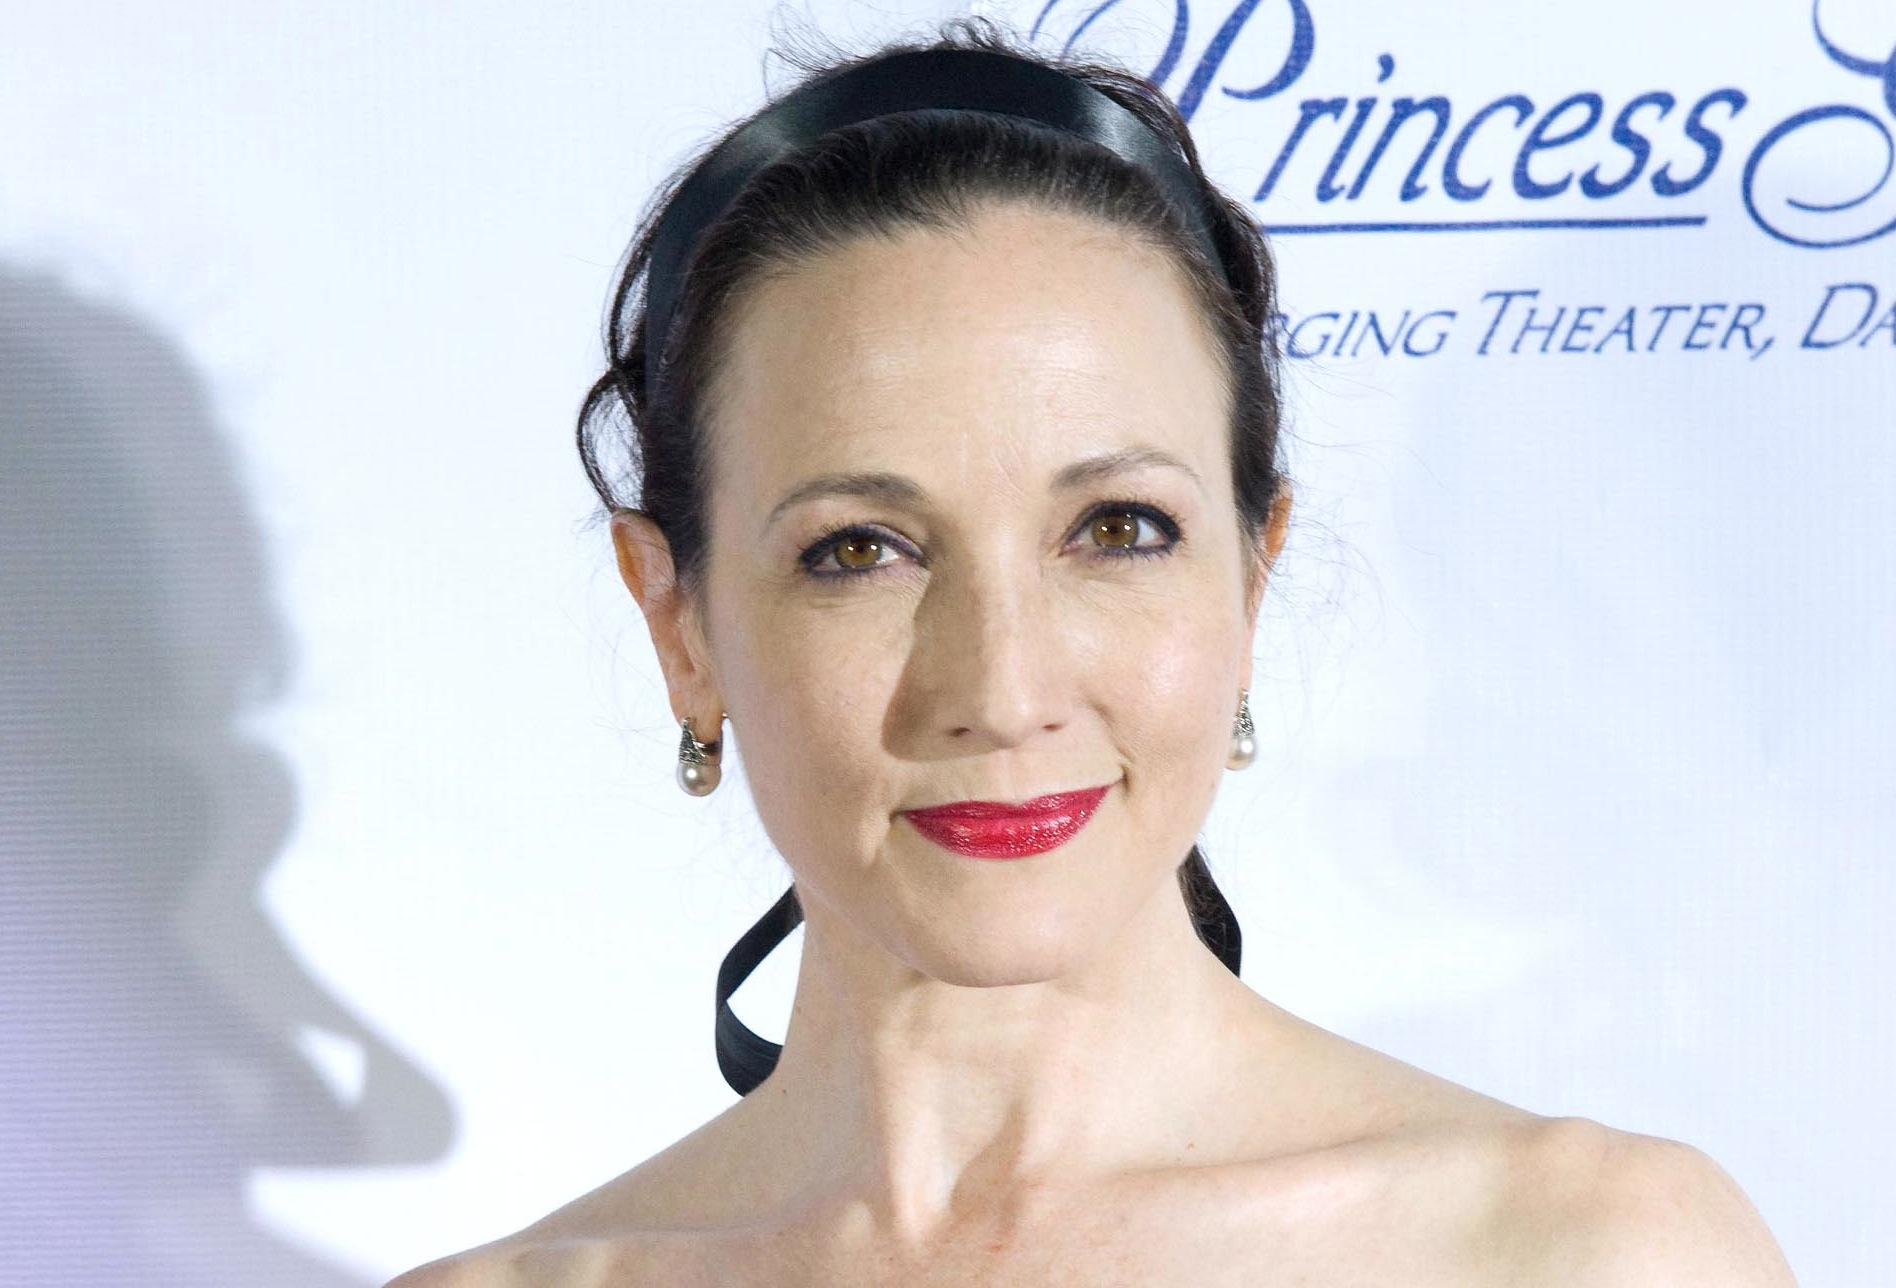 bebe neuwirth game 6bebe neuwirth instagram, bebe neuwirth cheers, bebe neuwirth all that jazz, bebe neuwirth will and grace, bebe neuwirth chris calkins, bebe neuwirth game 6, bebe neuwirth net worth, bebe neuwirth chicago, bebe neuwirth hot, bebe neuwirth blue bloods, bebe neuwirth imdb, bebe neuwirth movies and tv shows, bebe neuwirth star trek, bebe neuwirth broadway, bebe neuwirth legs, bebe neuwirth diet